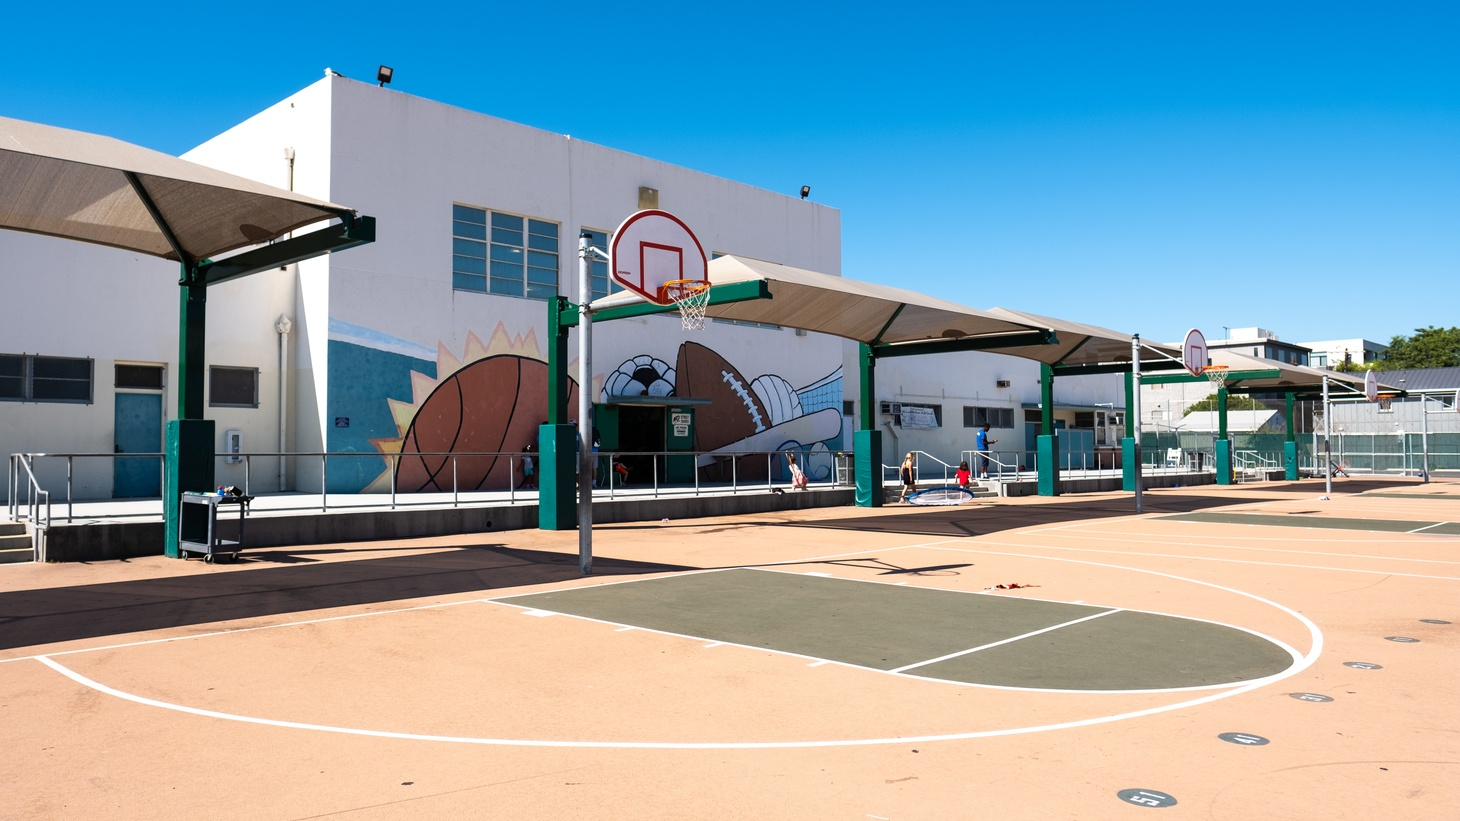 Gym and basketball courts at Palms Middle School, Los Angeles.